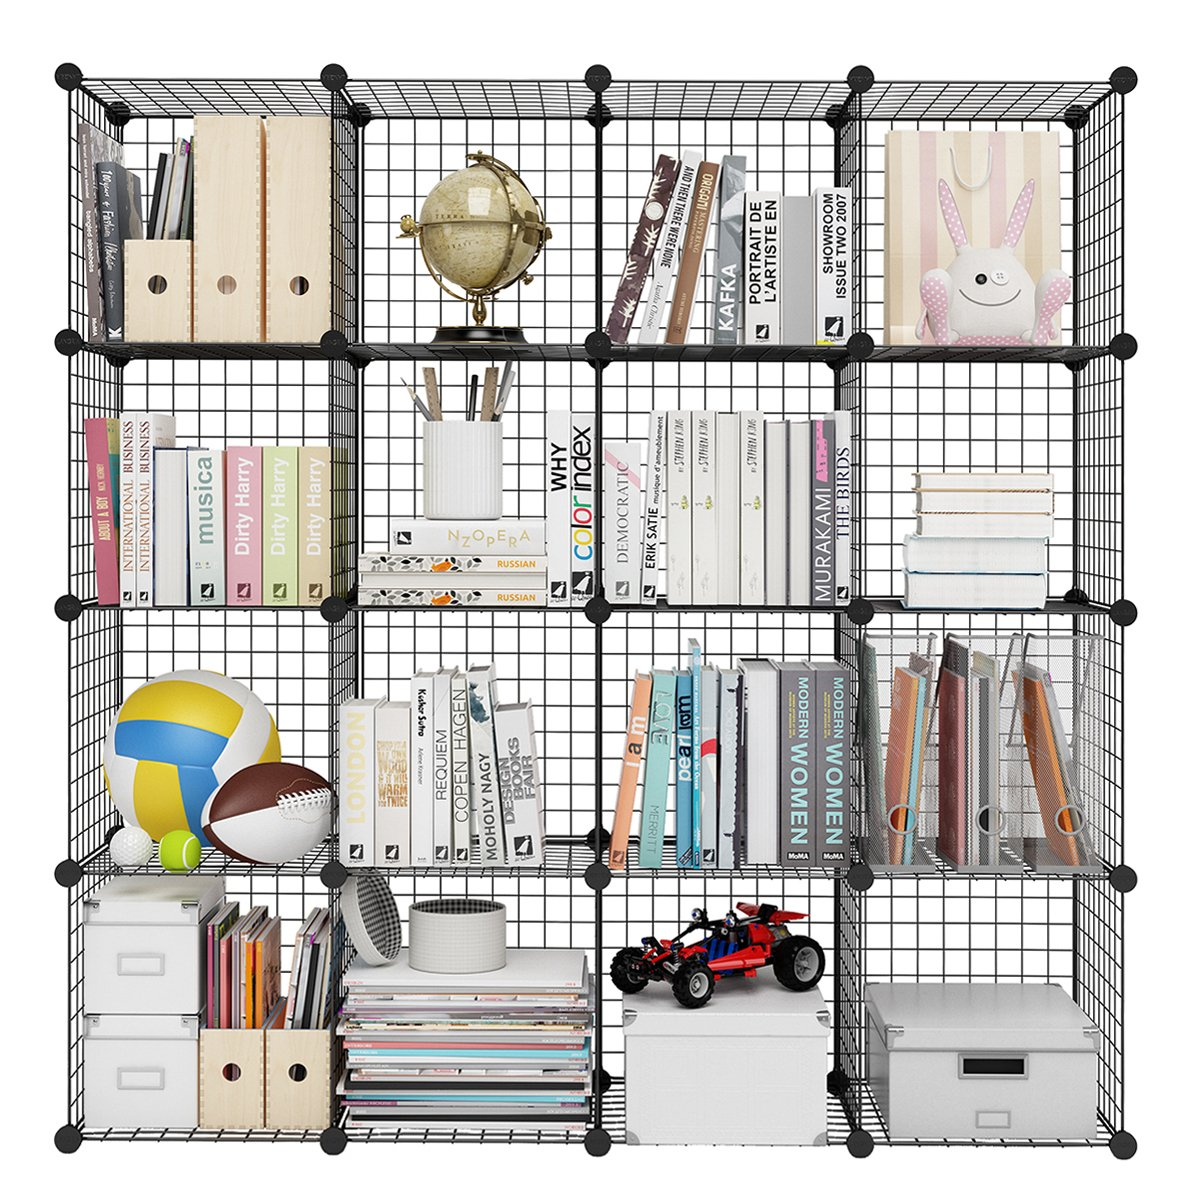 LANGRIA 16-Cube DIY Wire Grid Bookcase, Multi-Use Modular Storage Shelving Rack, Open Organiser Closet Cabinet for Books, Toys, Clothes, Tools, Max Capacity 20kg per Cube, Black